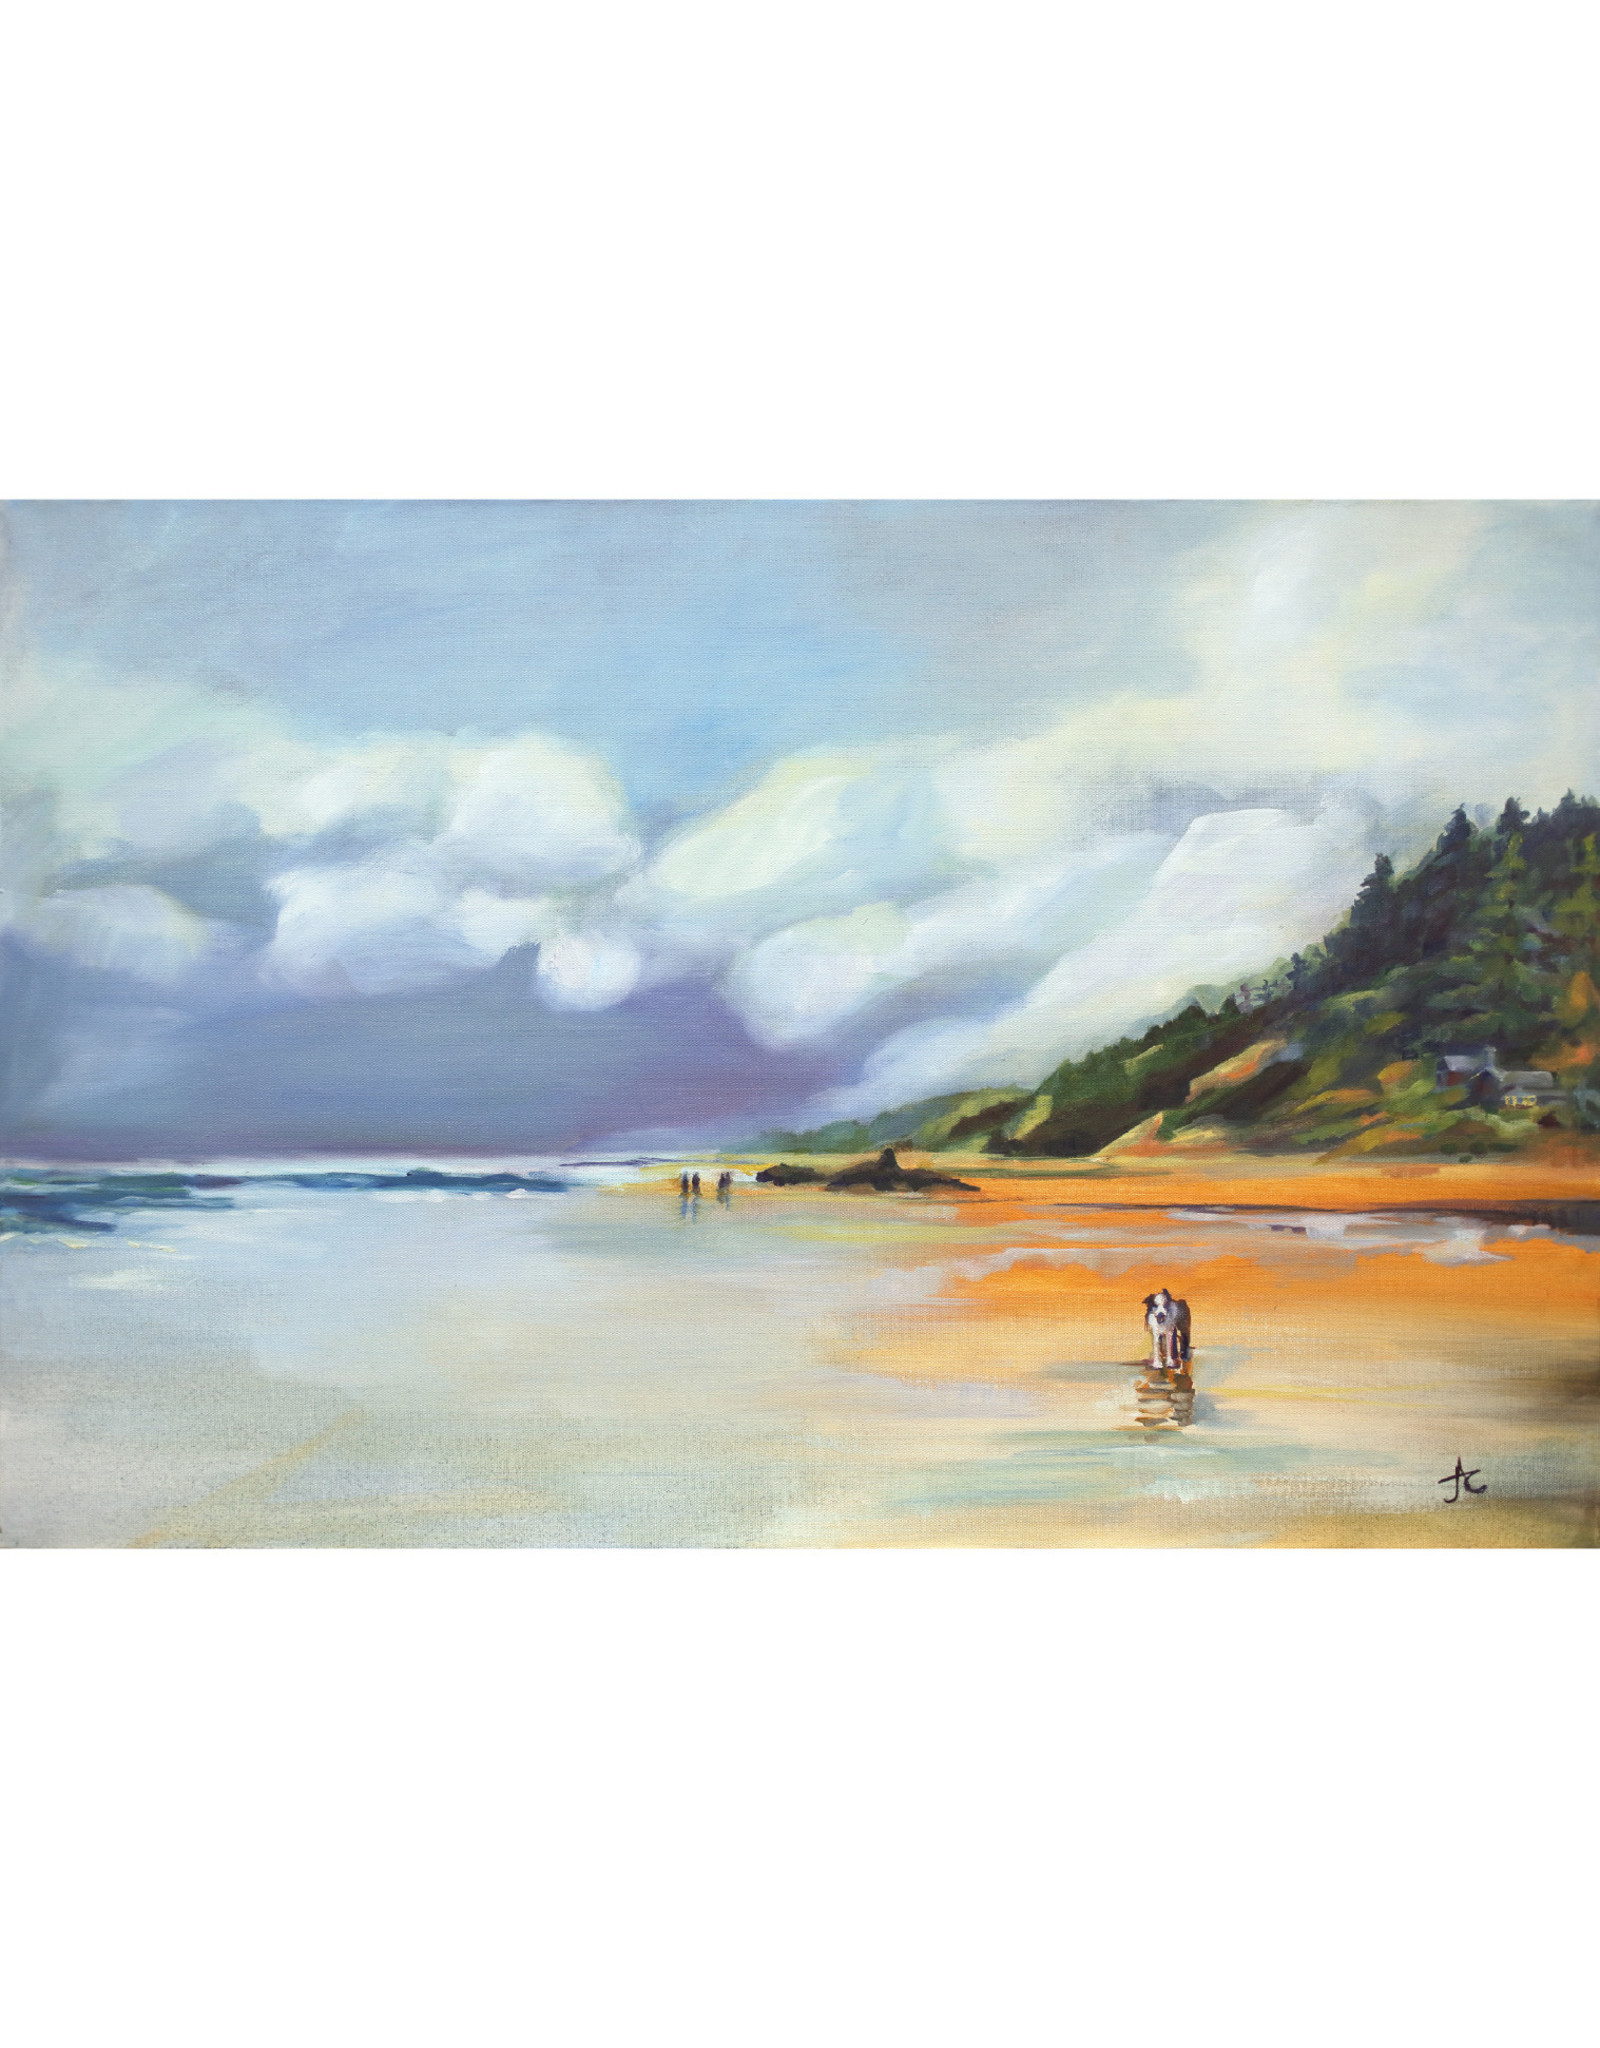 """Jennifer Cook-Chrysos Chrysos Designs Artworks, """"Dog Day at Arch Cape"""", Oil on Canvas, 36 x 24, framed."""